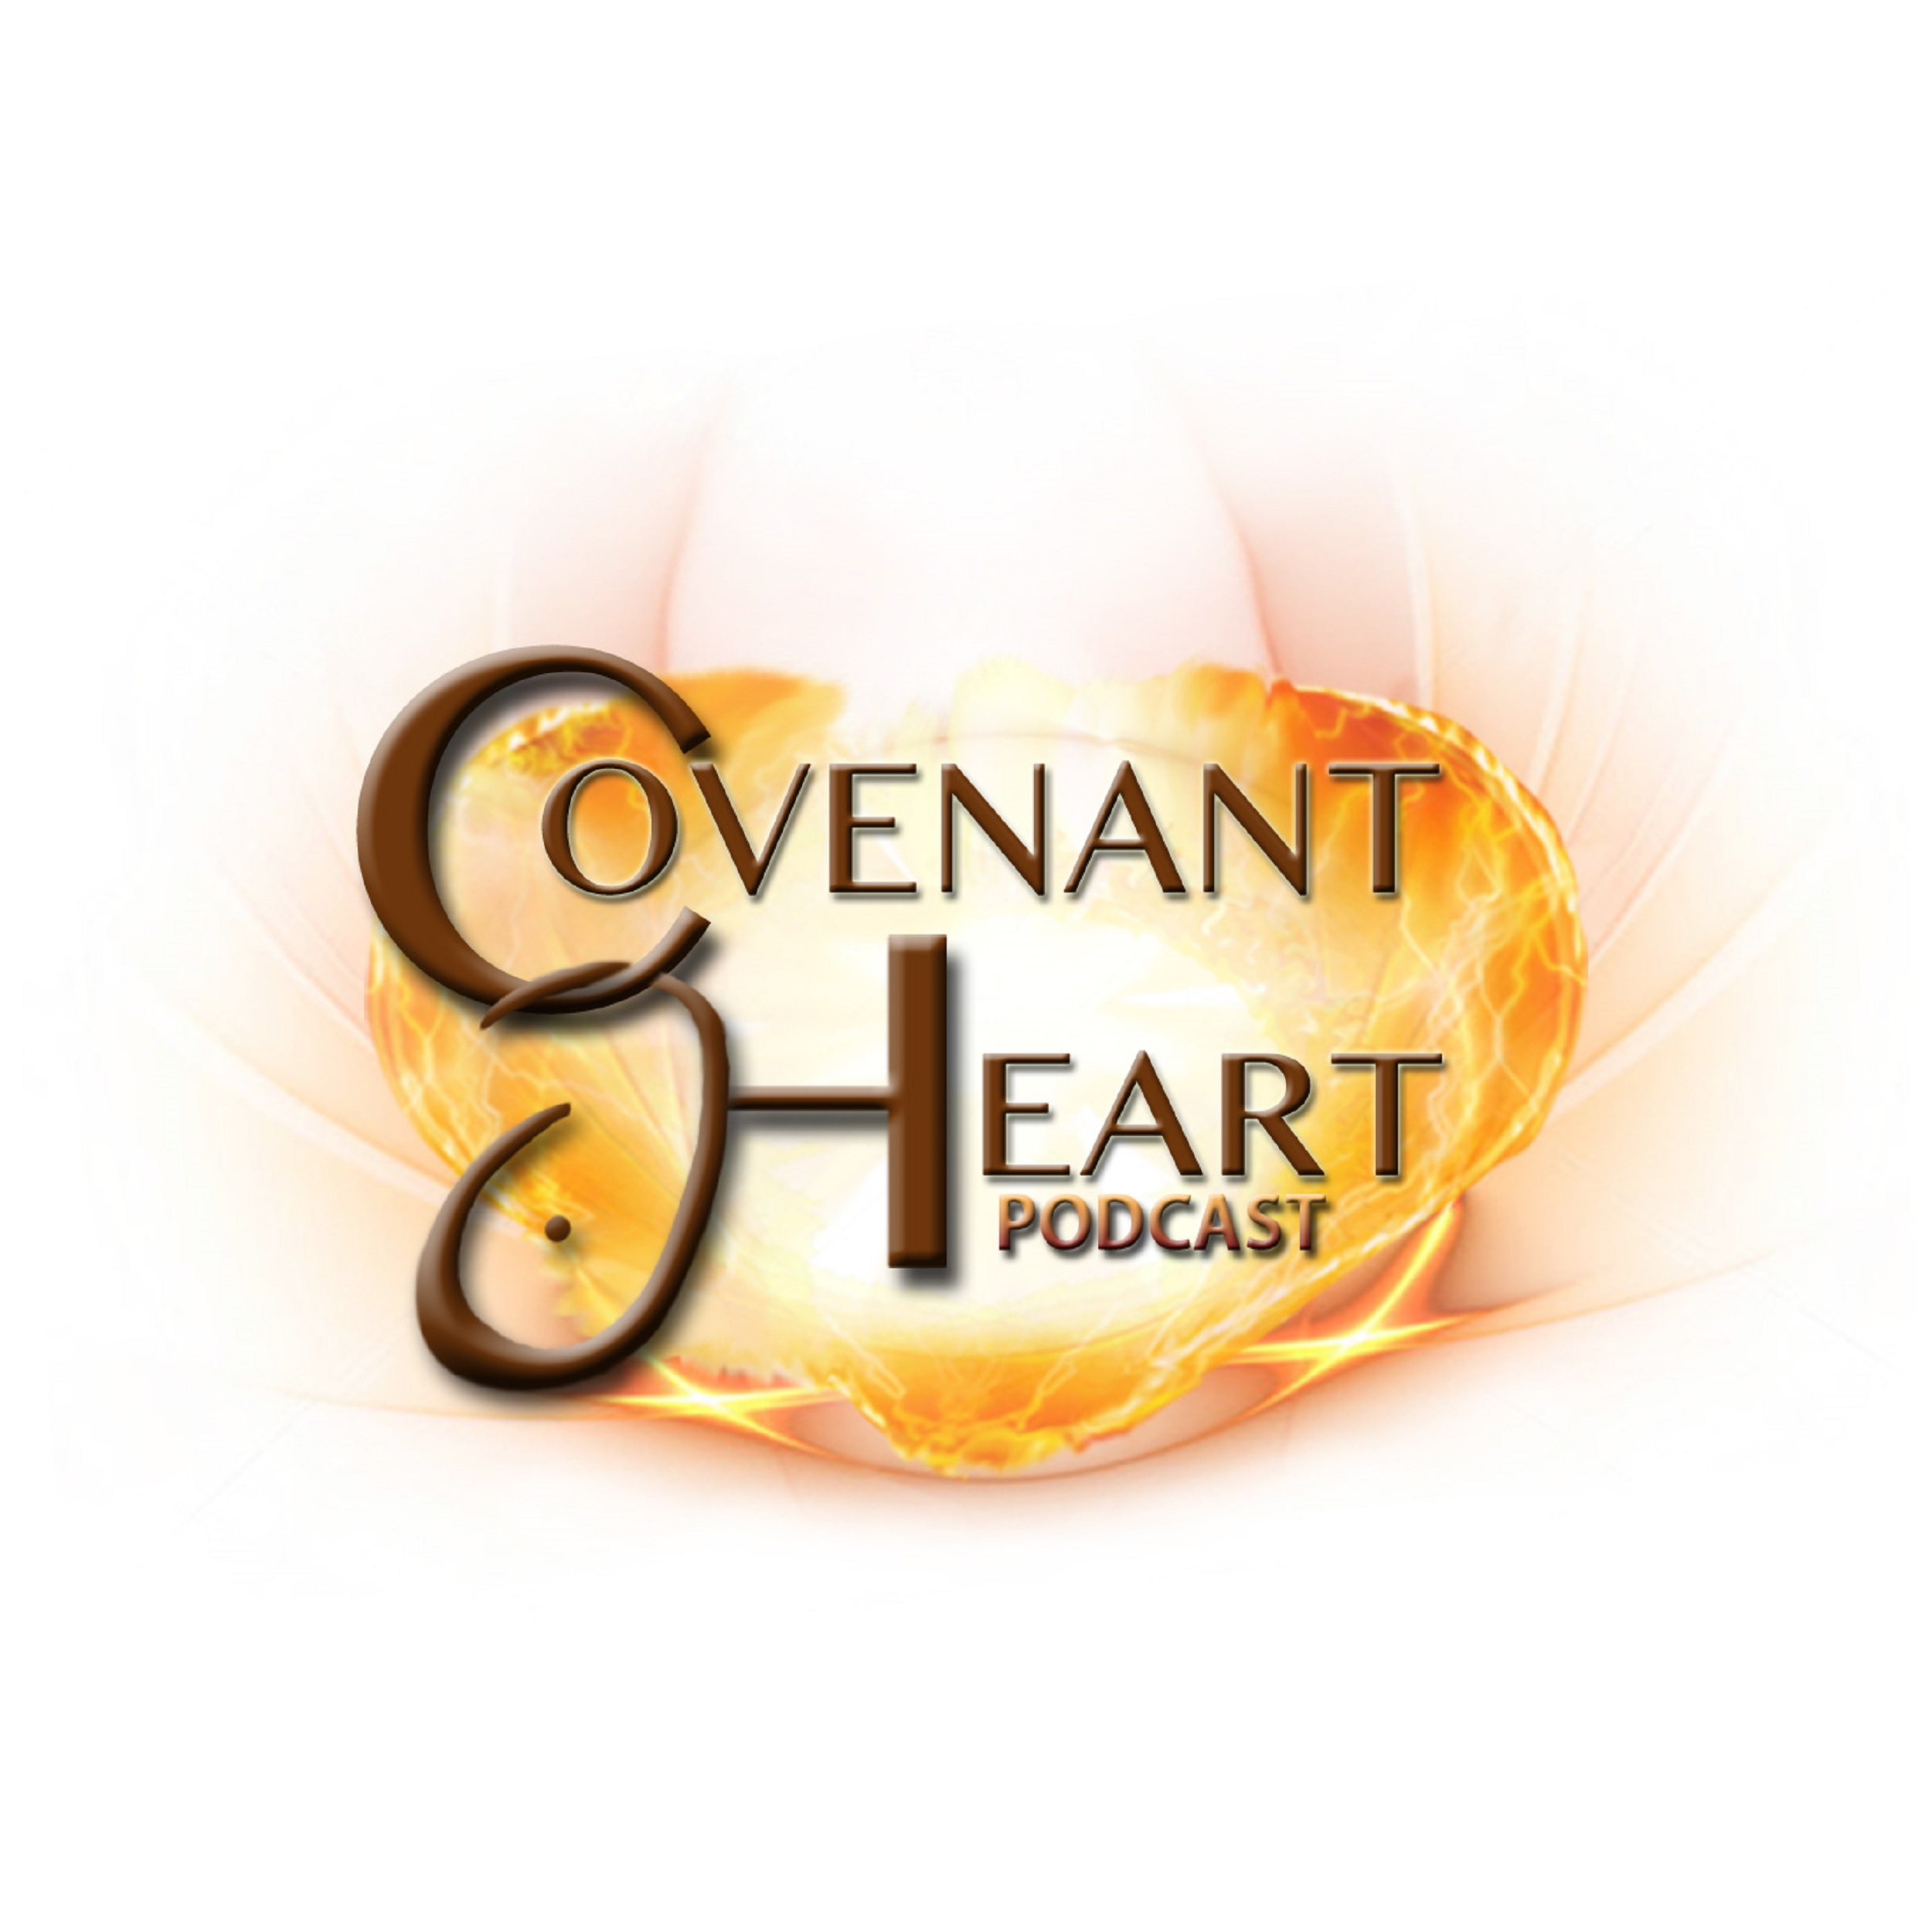 Covenant Heart Podcast show art